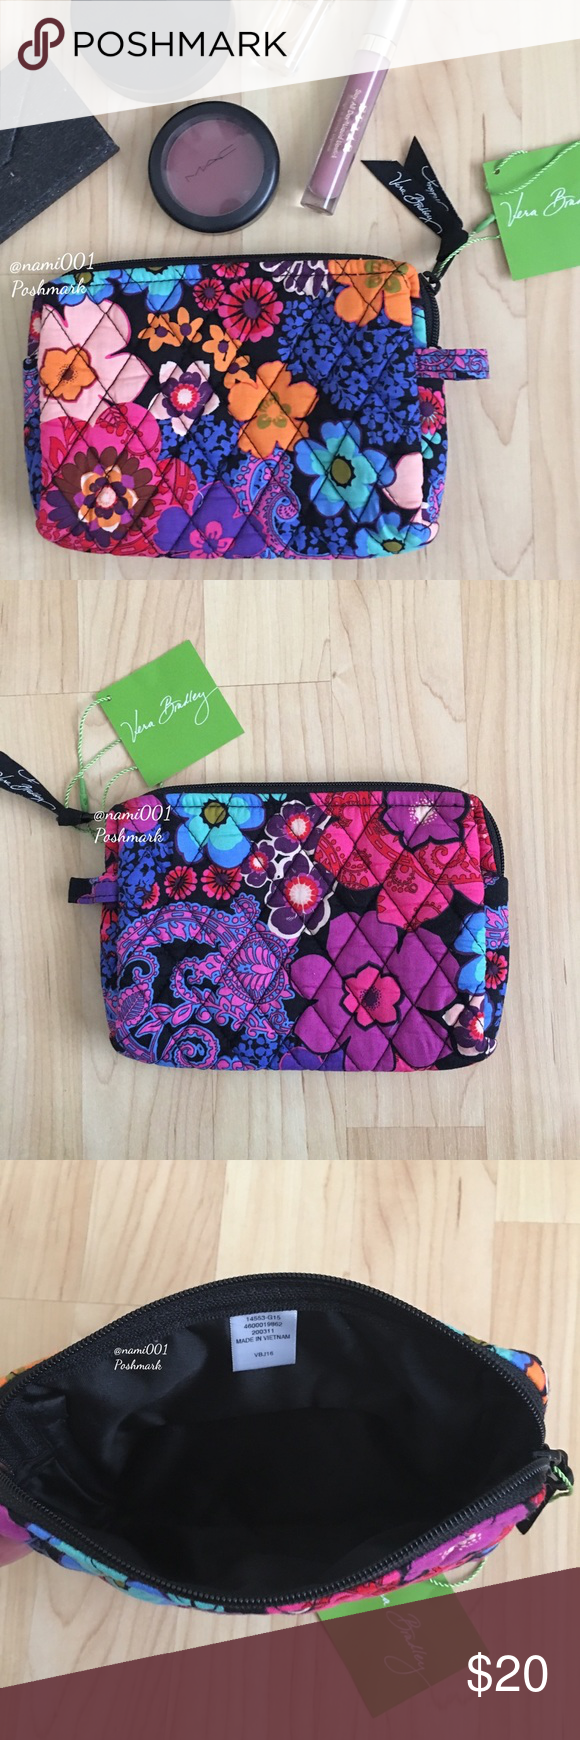 """Vera Bradley Floral Fiesta Small Makeup Bag Pouch Vintage inspired this medium sized makeup / cosmetic bag is perfect for the girl who likes to keep her handbag organized. Comes to you brand new with tags. Pretty and vibrant quilted fabric. Zip closure with Vera Bradley ribbon pull. Measures: 7"""" x 5.5"""". PRICE FIRM UNLESS BUNDLED. TRADES Vera Bradley Bags Cosmetic Bags & Cases"""